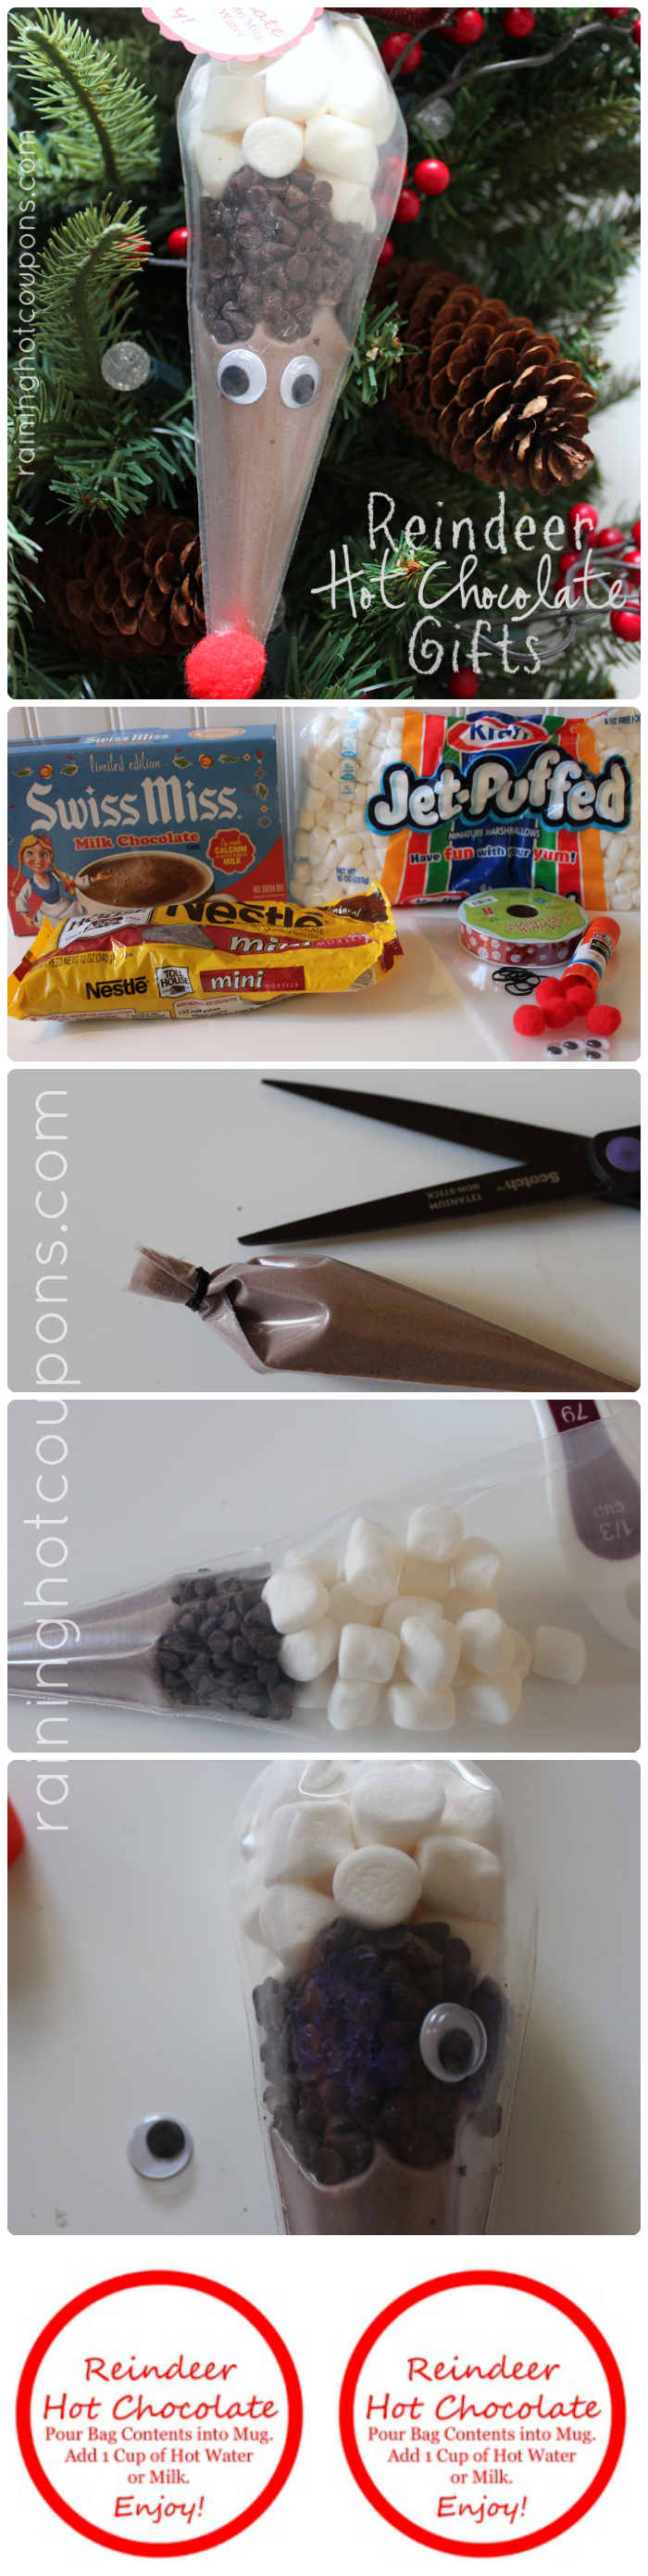 Reindeer Hot Chocolate Gifts + FREE Printable Gift Tag Labels!